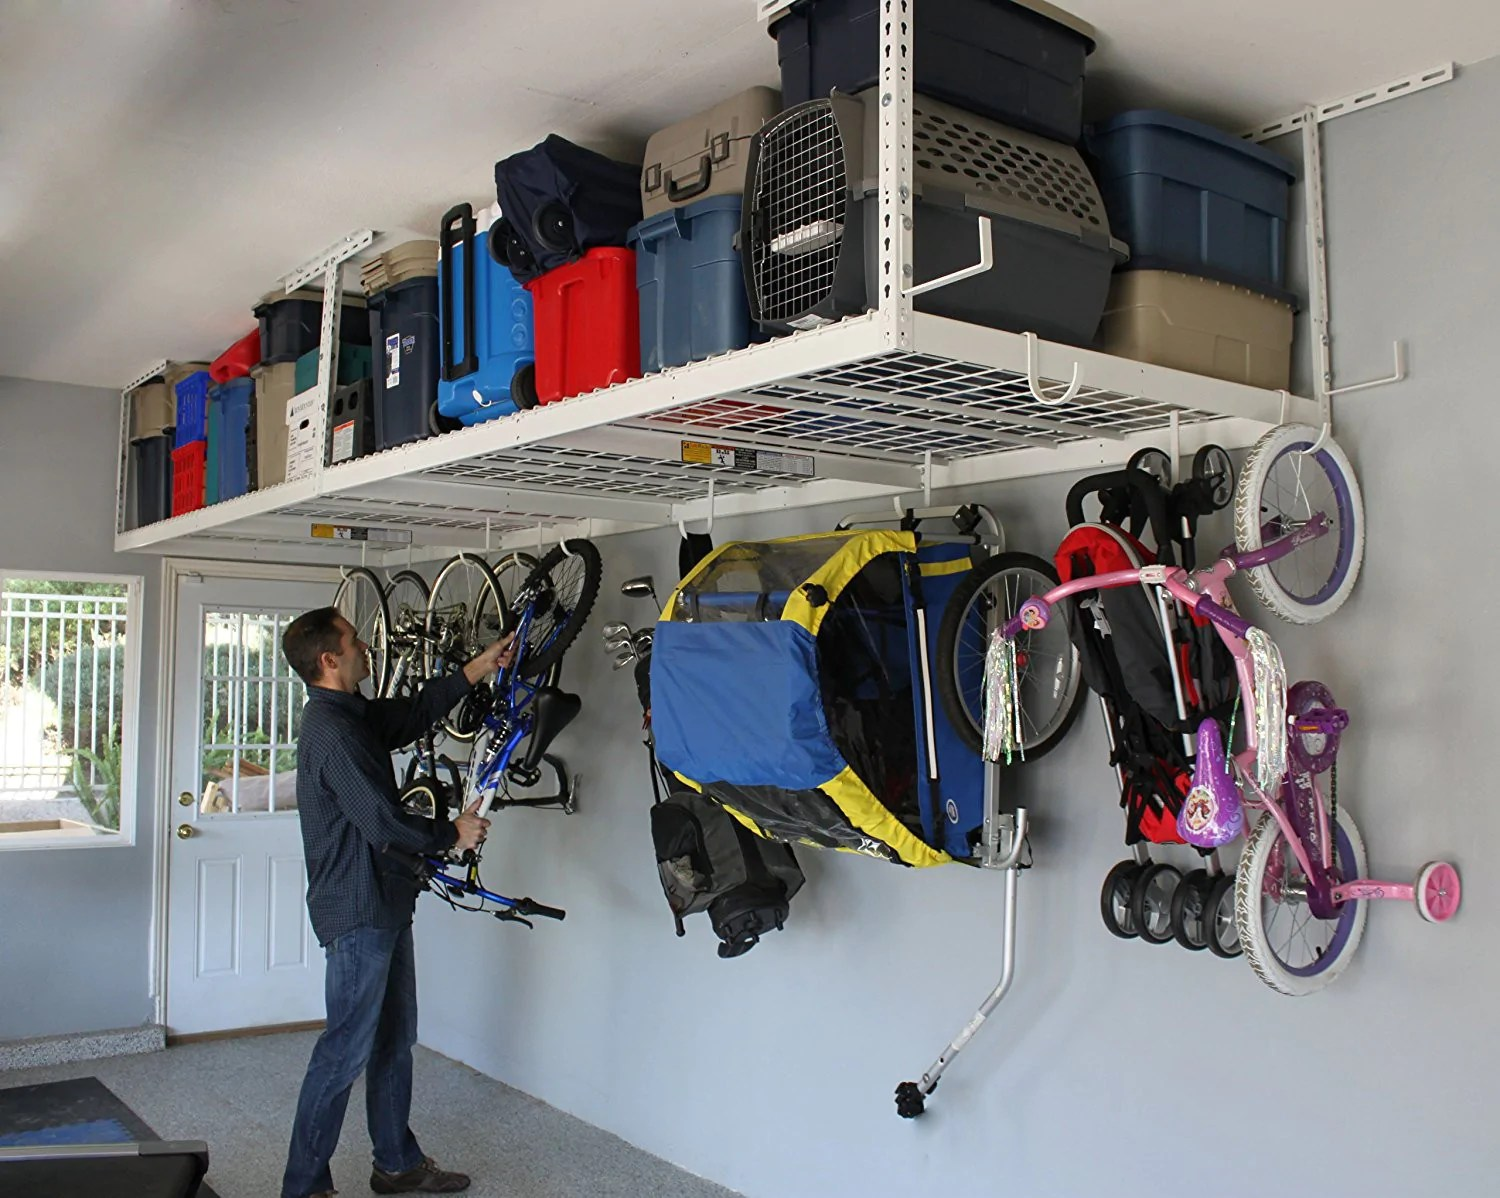 Tidy Garage Bike Rack Installation Saferacks Overhead Garage Storage Bike Rack Heavy Duty 18